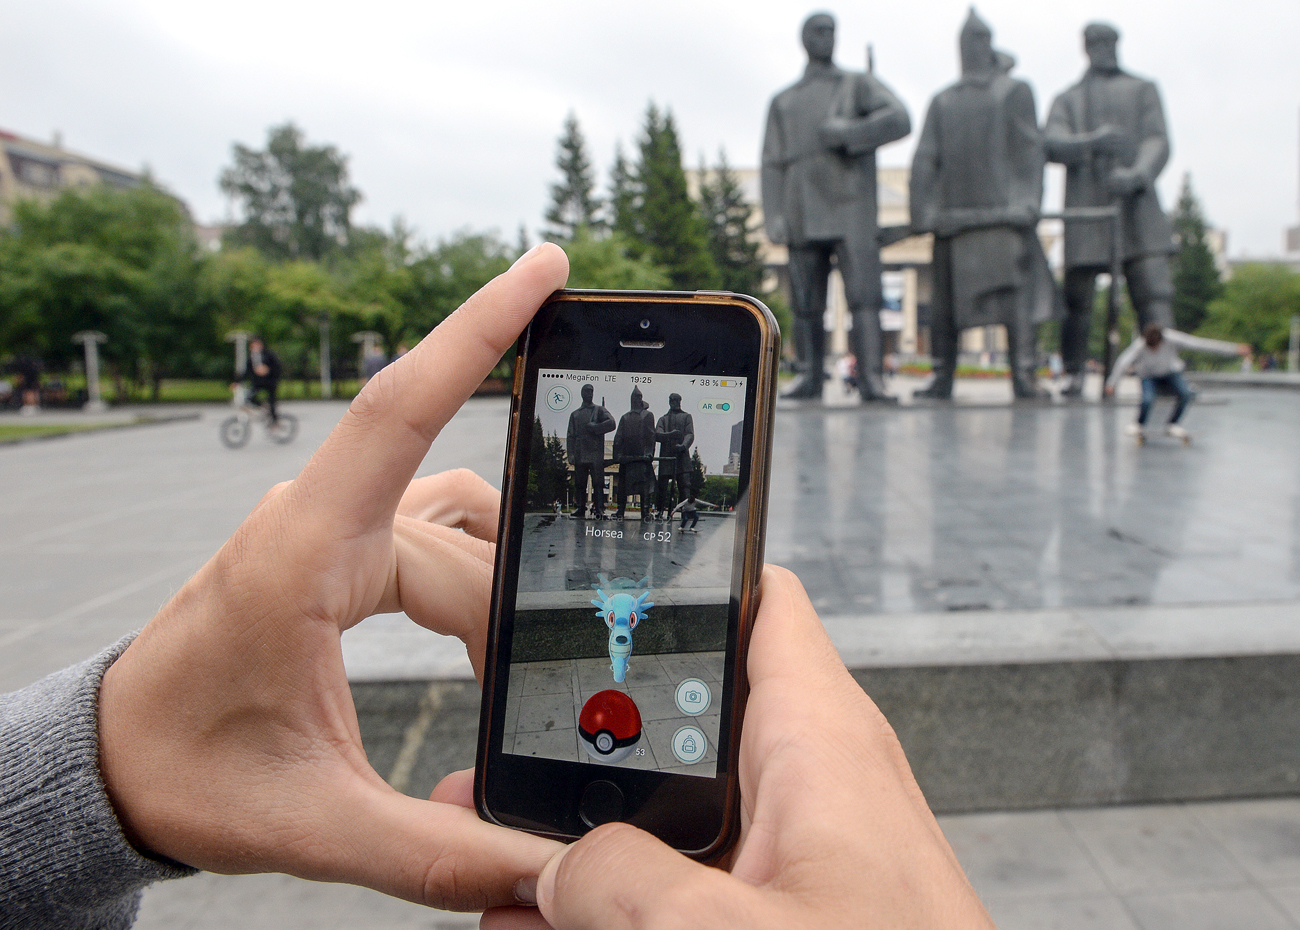 Pokemon Go, the mobile game from Nintendo, on their mobile phones in the park across the street from the Novosibirsk Opera